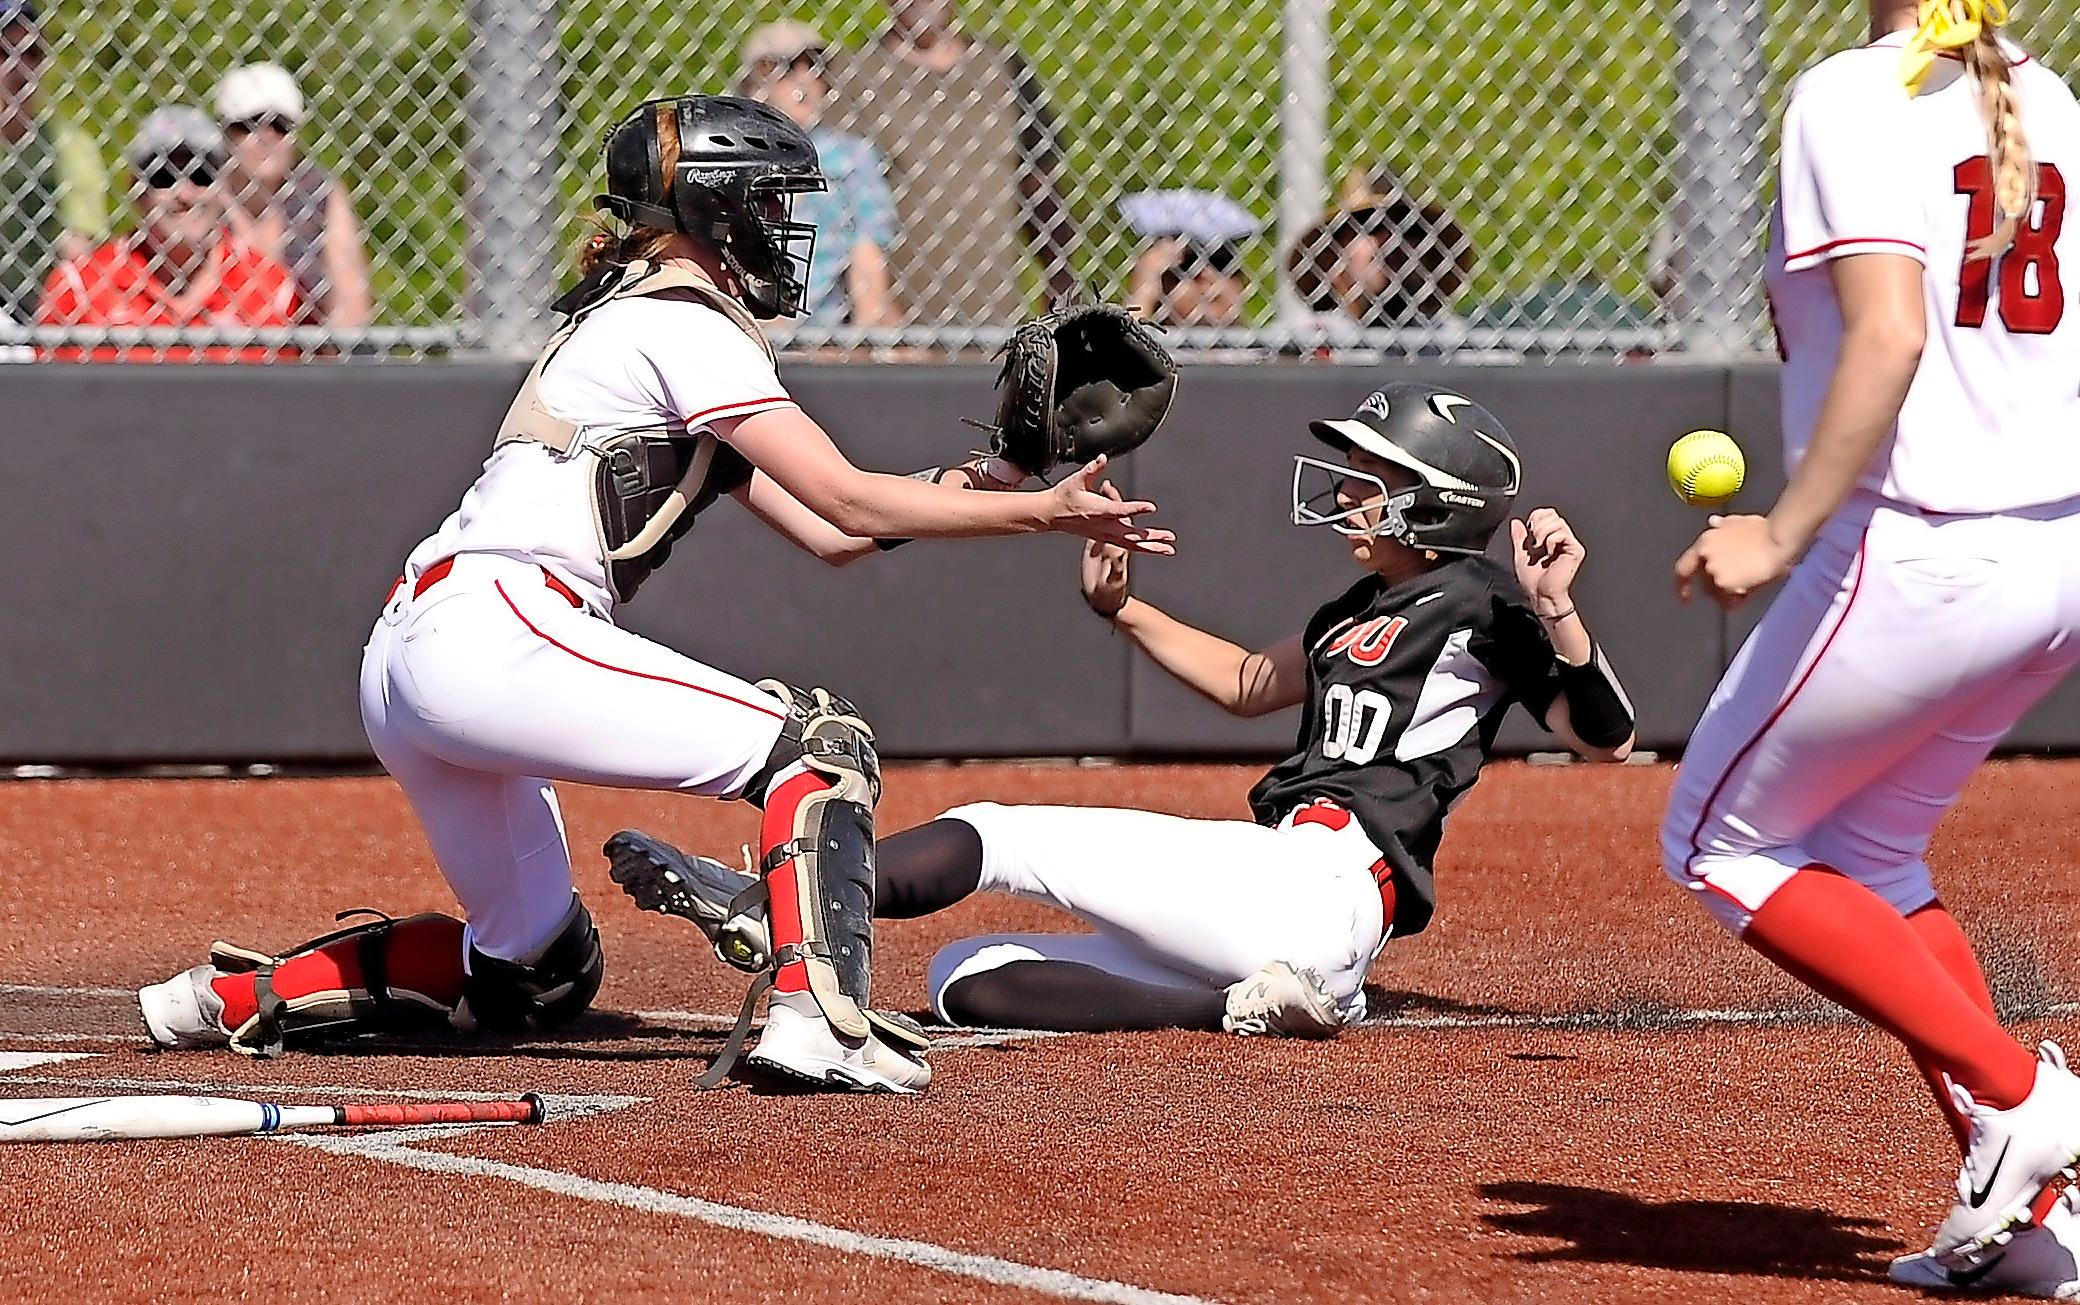 Andy Atkinson/Daily Tidings<p>Southern Oregon University second baseman Hannah Shimek beats the throw at home to score what proved to be the game-winning run in the bottom of the fifth inning against Northwestern College on Tuesday.<br></p>